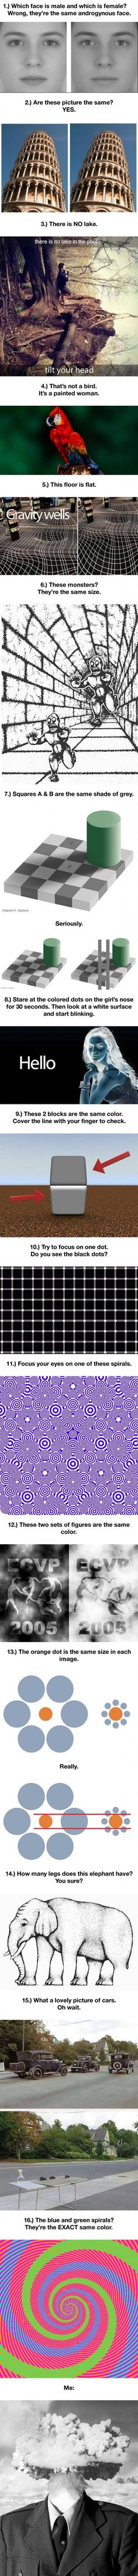 Melt your mind with these optical illusions!